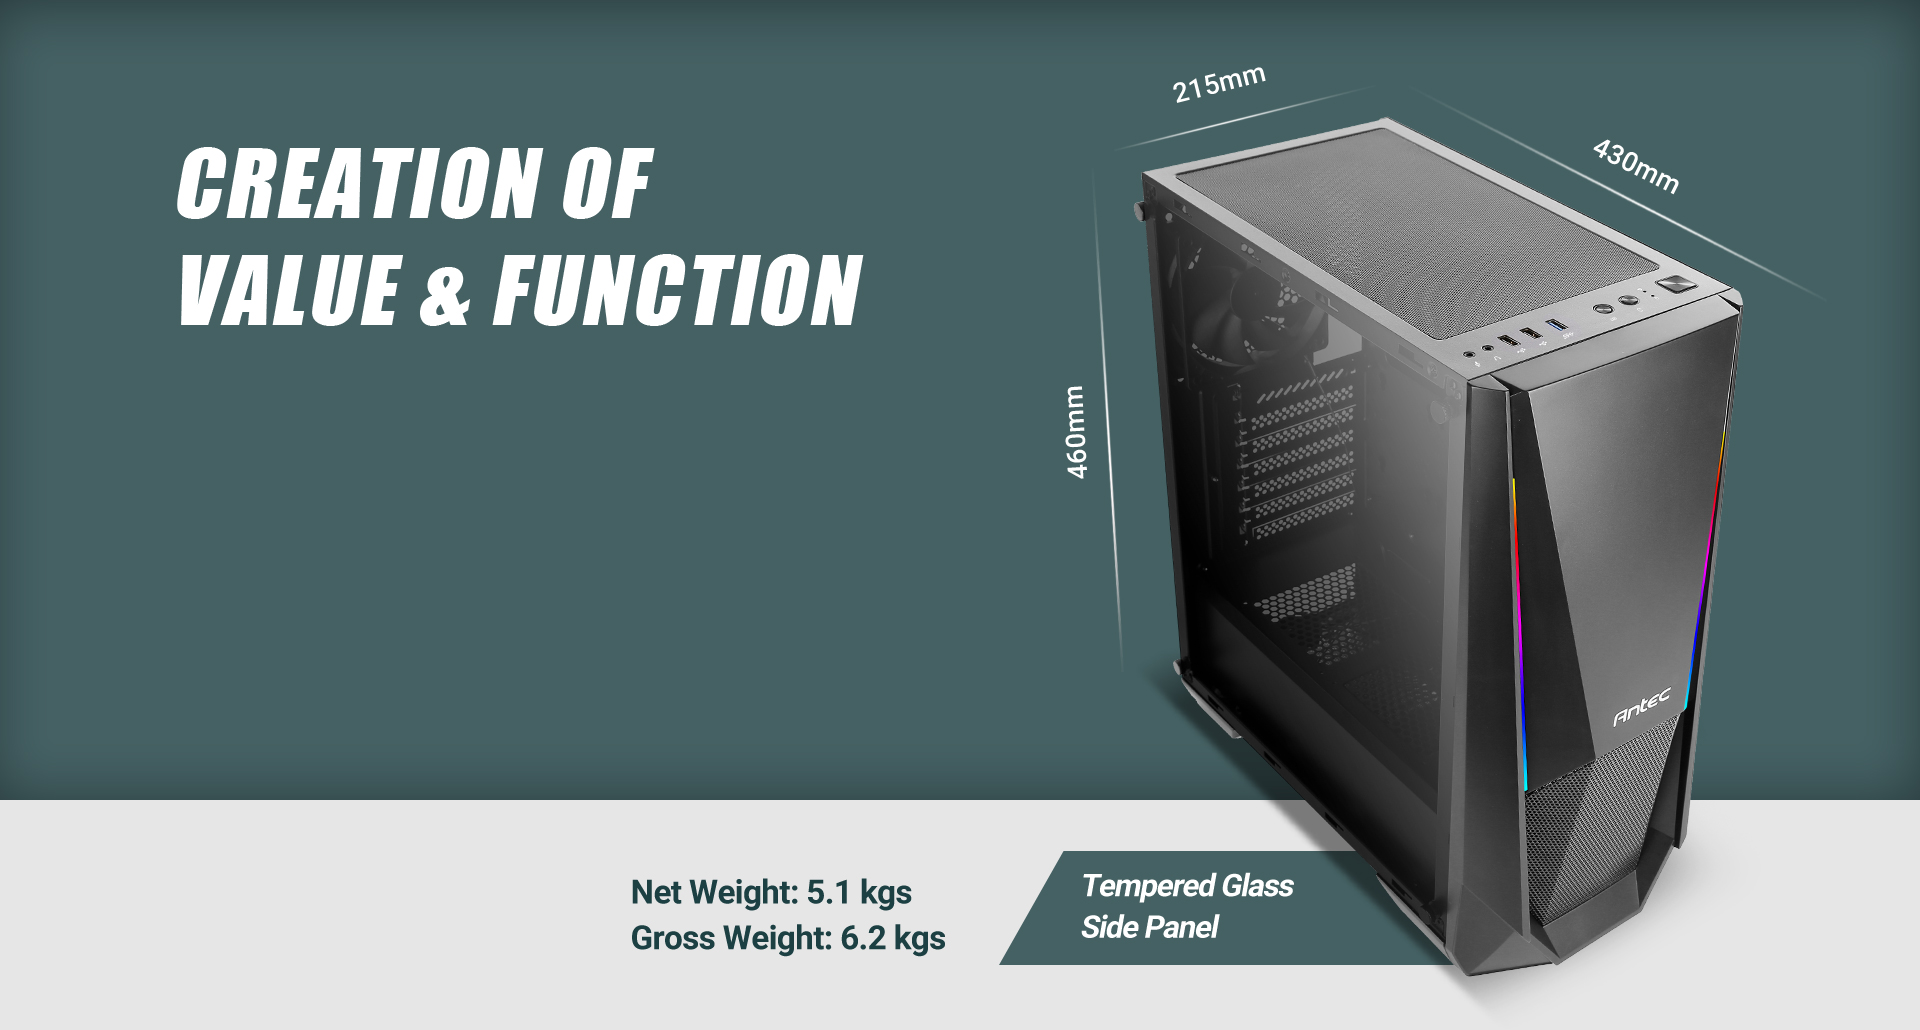 NX Series NX310 Mid Tower ATX Gaming Case Length, width and height